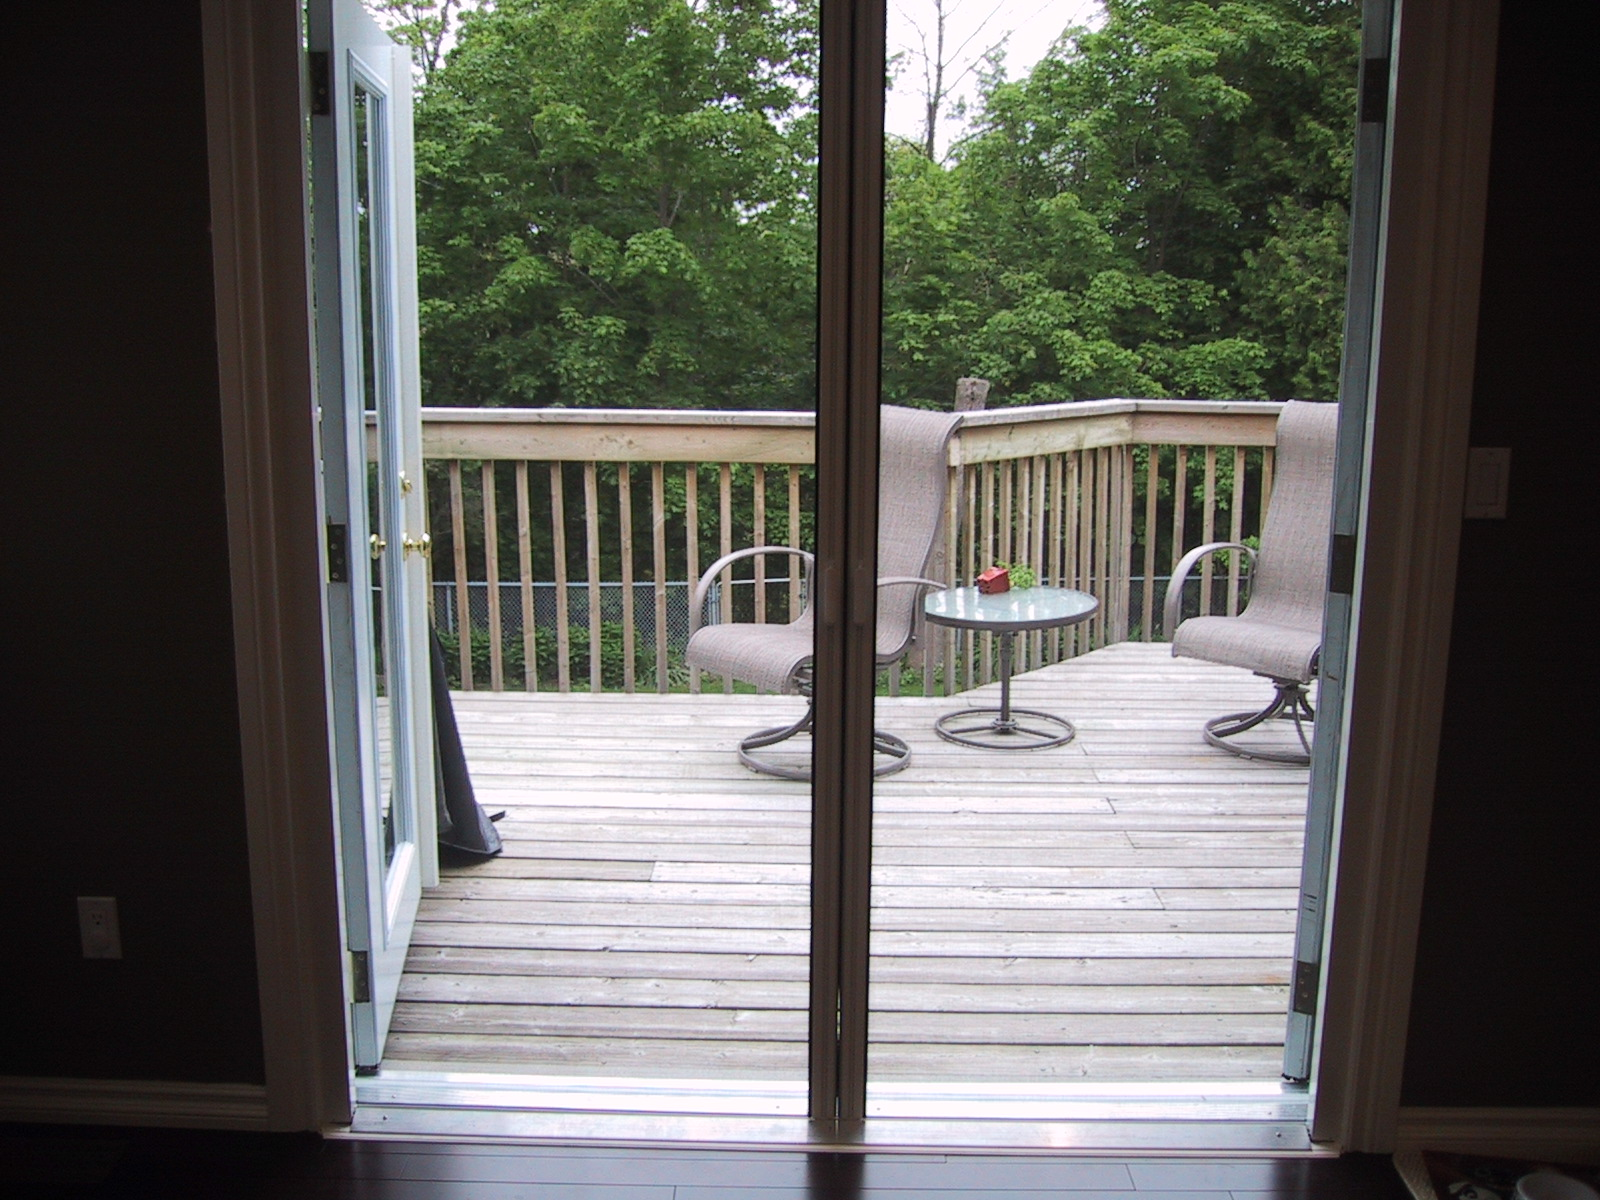 Retractable Screen doors matched with wooden floor before balcony